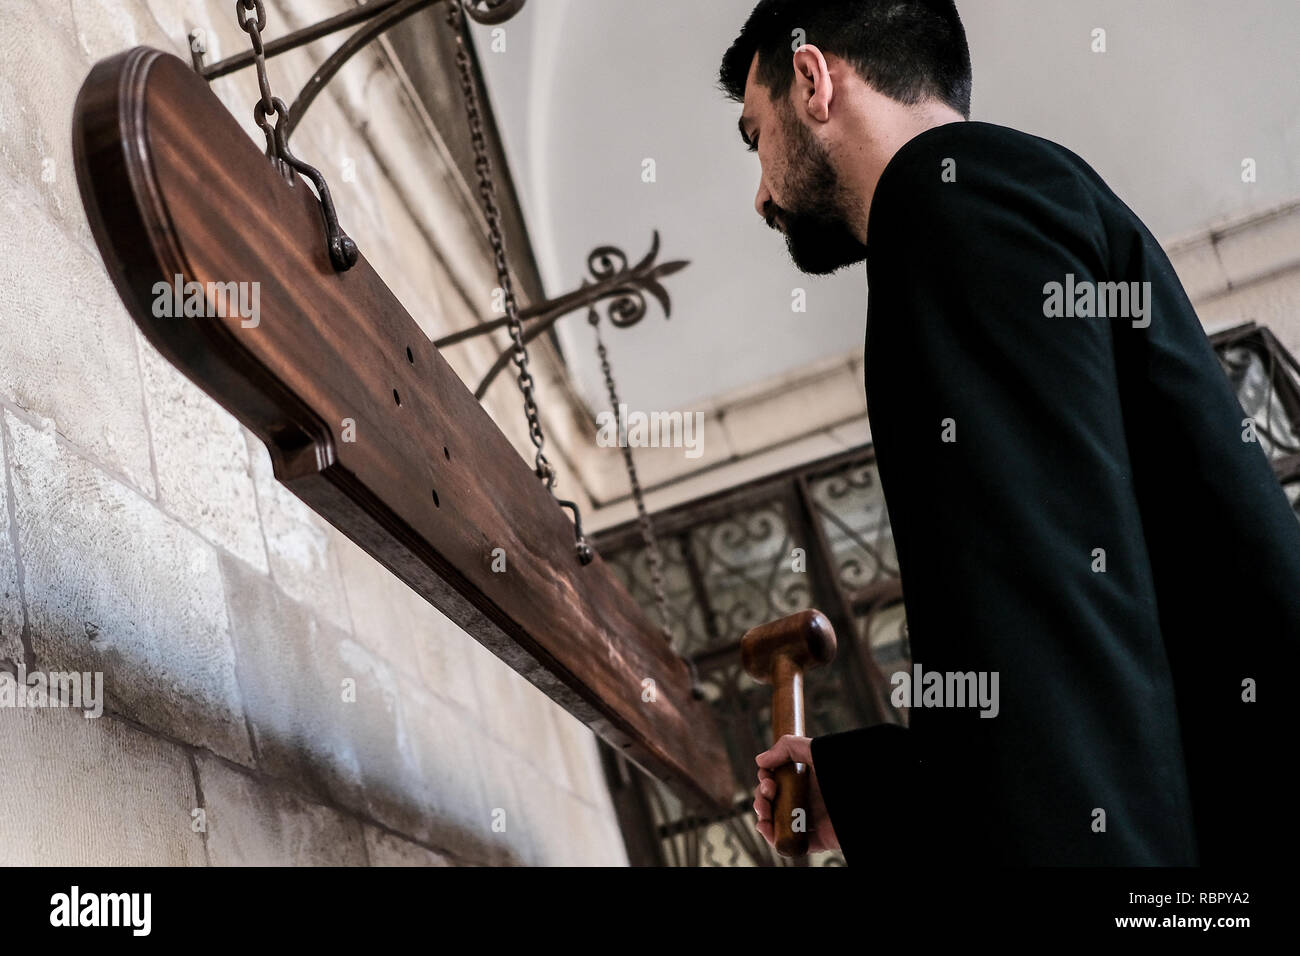 A priesthood seminarian strikes nakos or simandron, wooden boards used instead of bells when the Ottoman rulers forbade the ringing of church bells, t - Stock Image